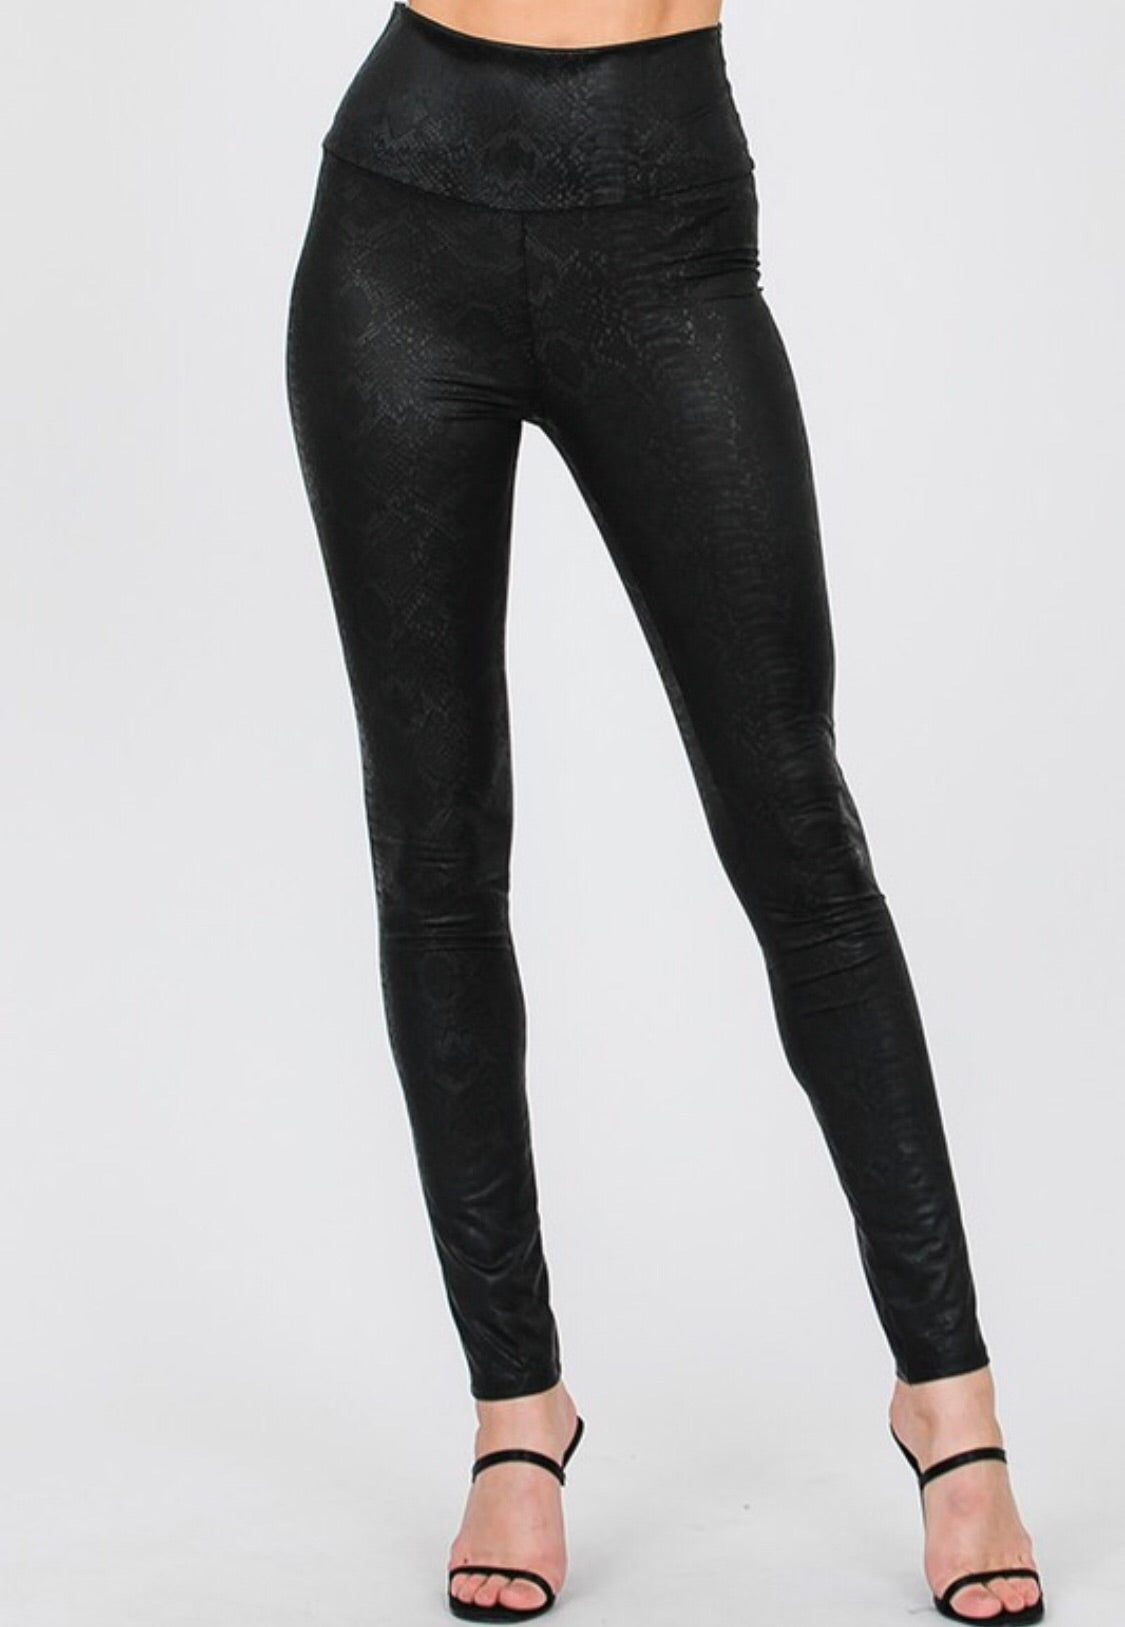 Textured Snake Skin Print Leggings